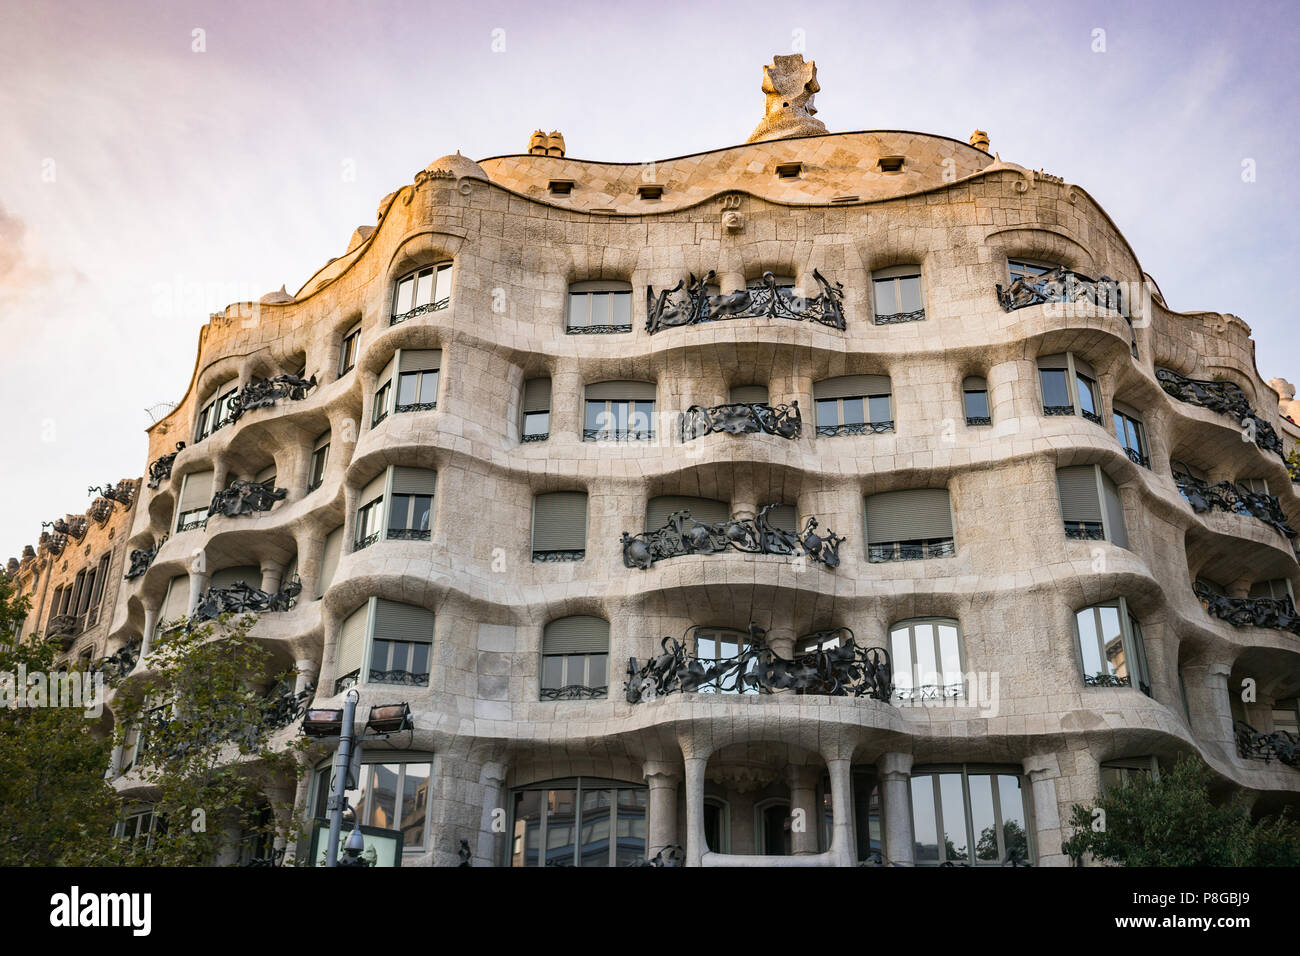 Waves and sculptural building details of La Pedrera, Casa Mila in Barcelona, Spain. Ornate architecture, view from below at sunset, vibrant colours. - Stock Image